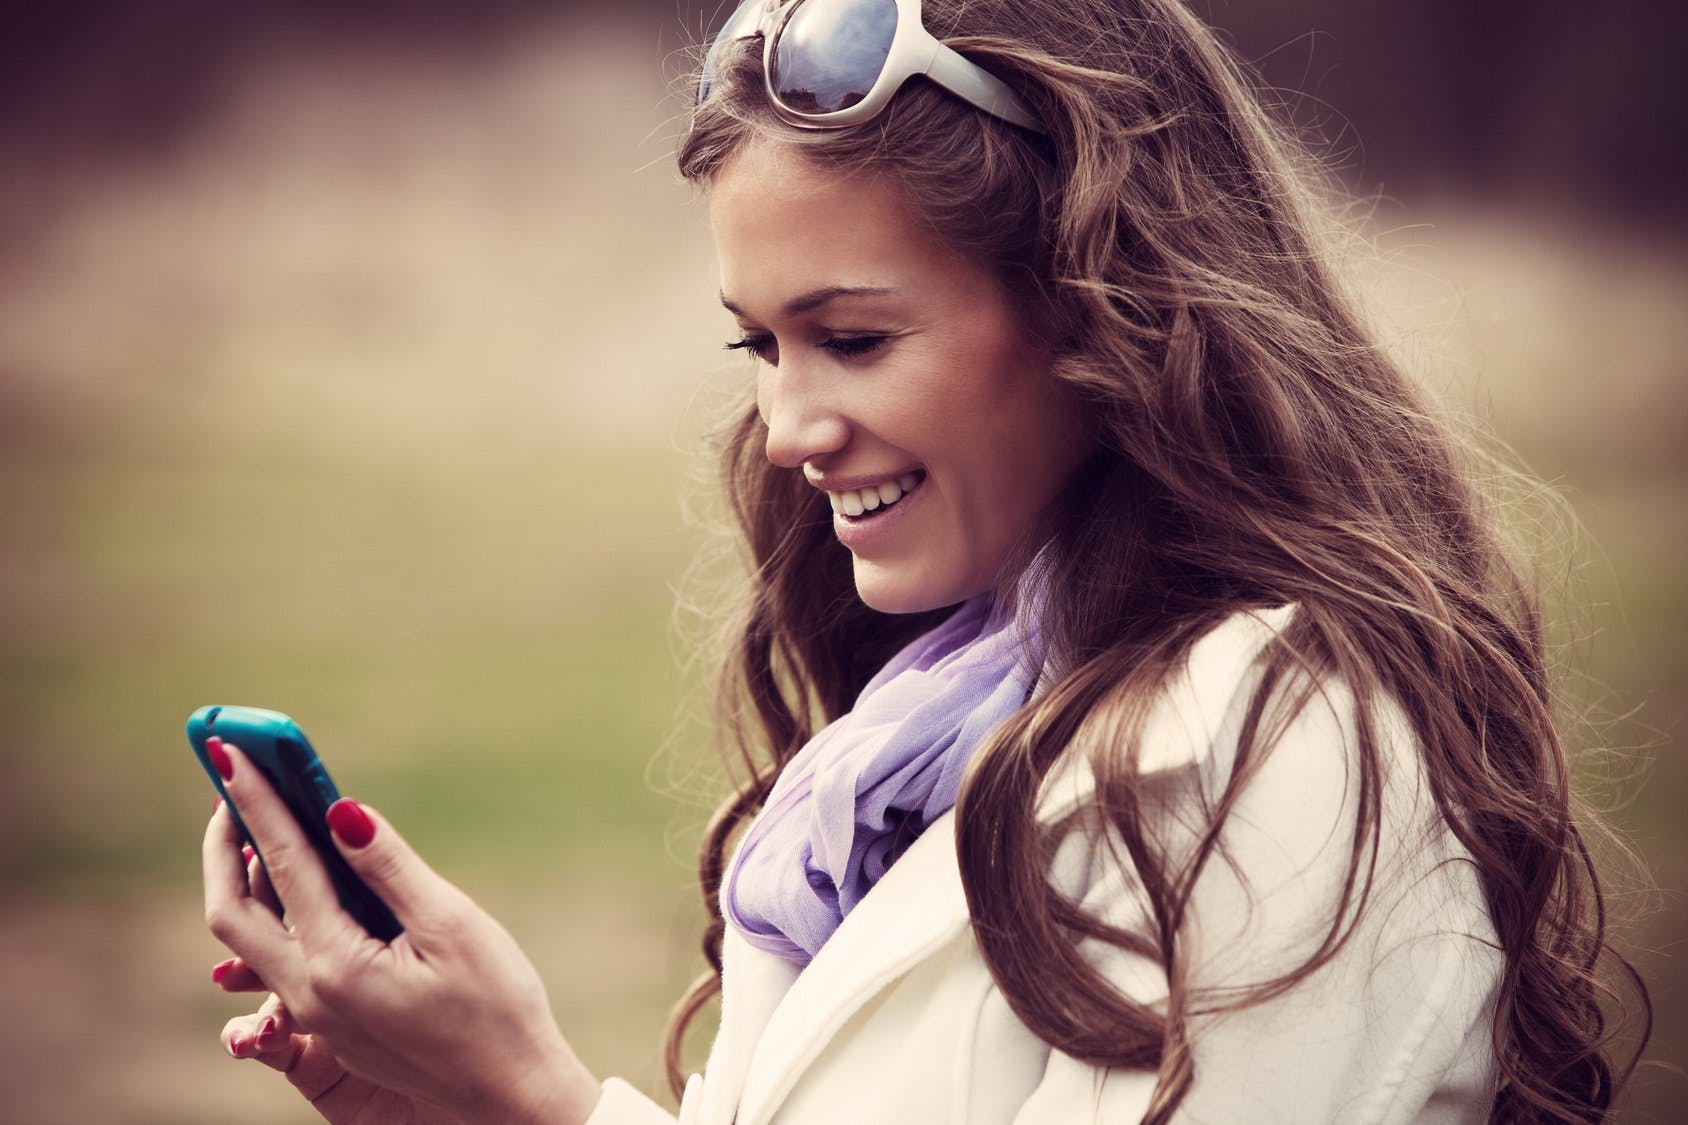 15 Best Twitter Accounts to Follow for Dating Advice in 2015